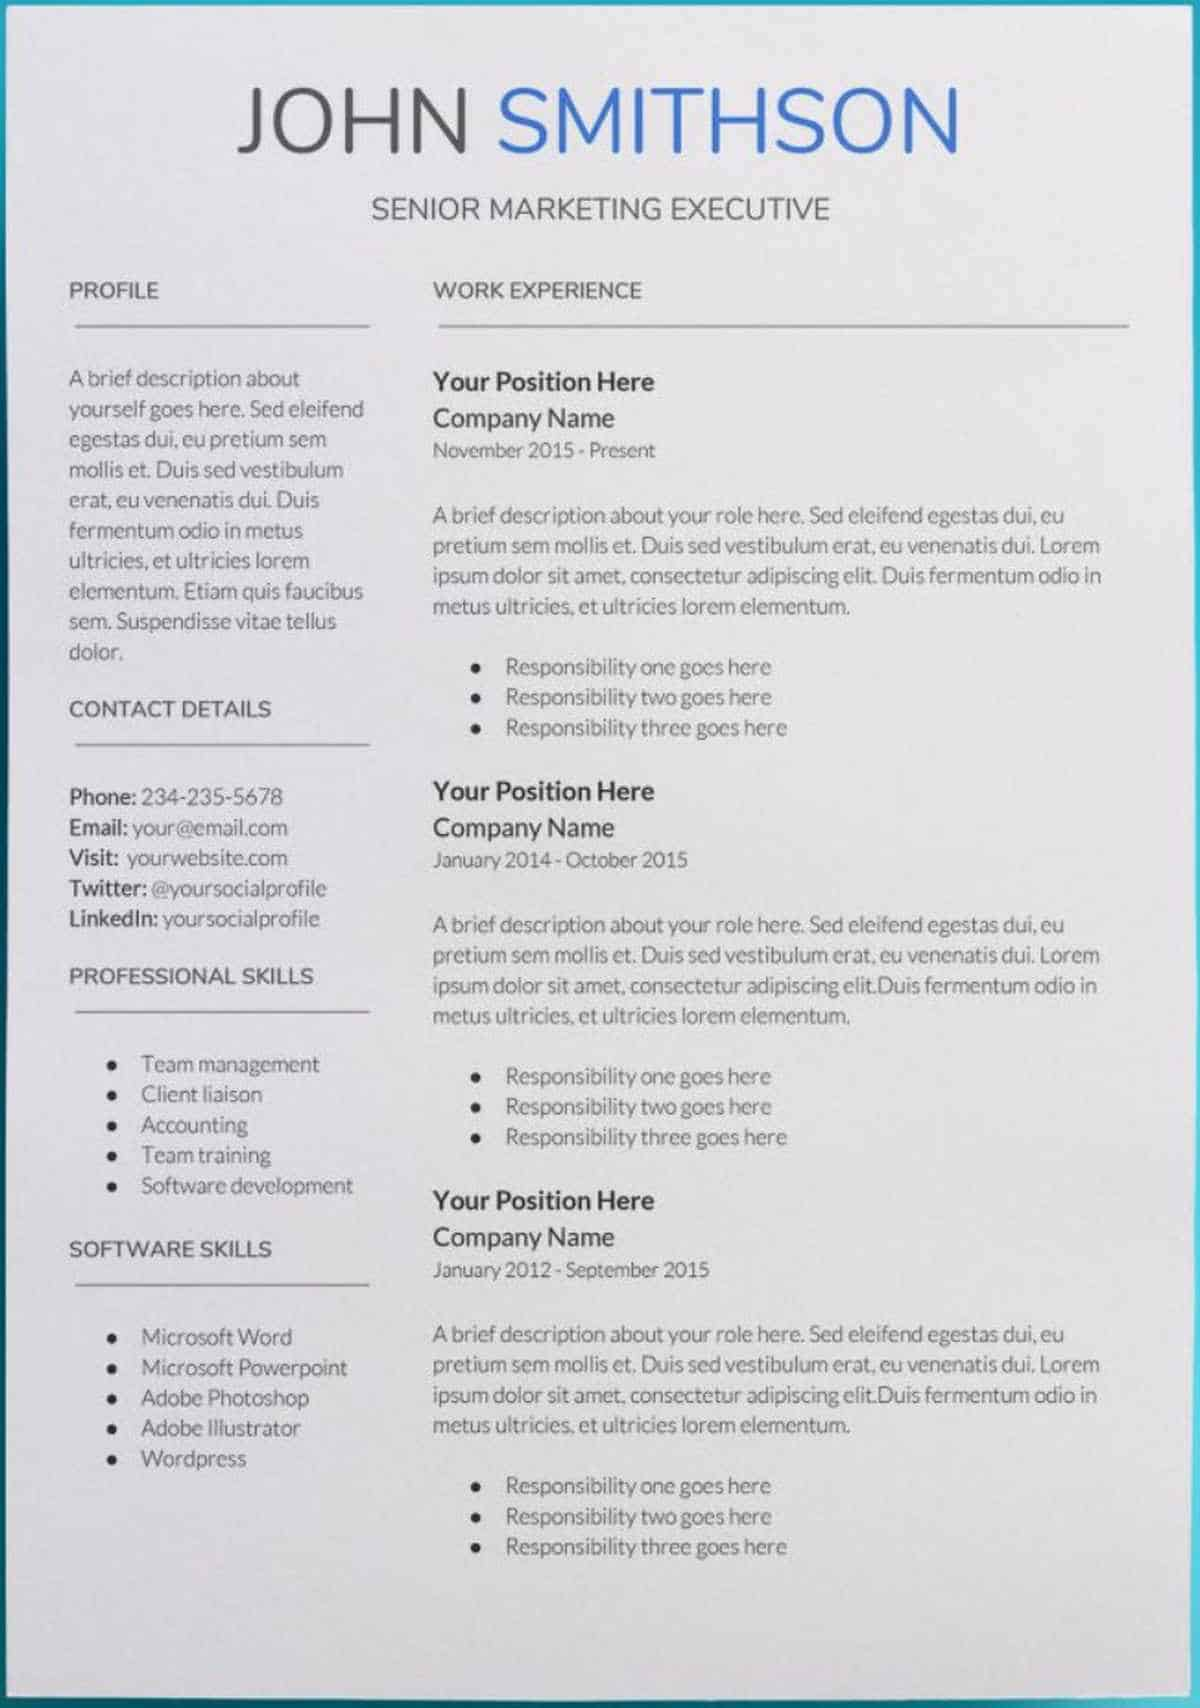 google docs resume templates downloadable pdfs drive template saturn free networking Resume Google Drive Resume Template